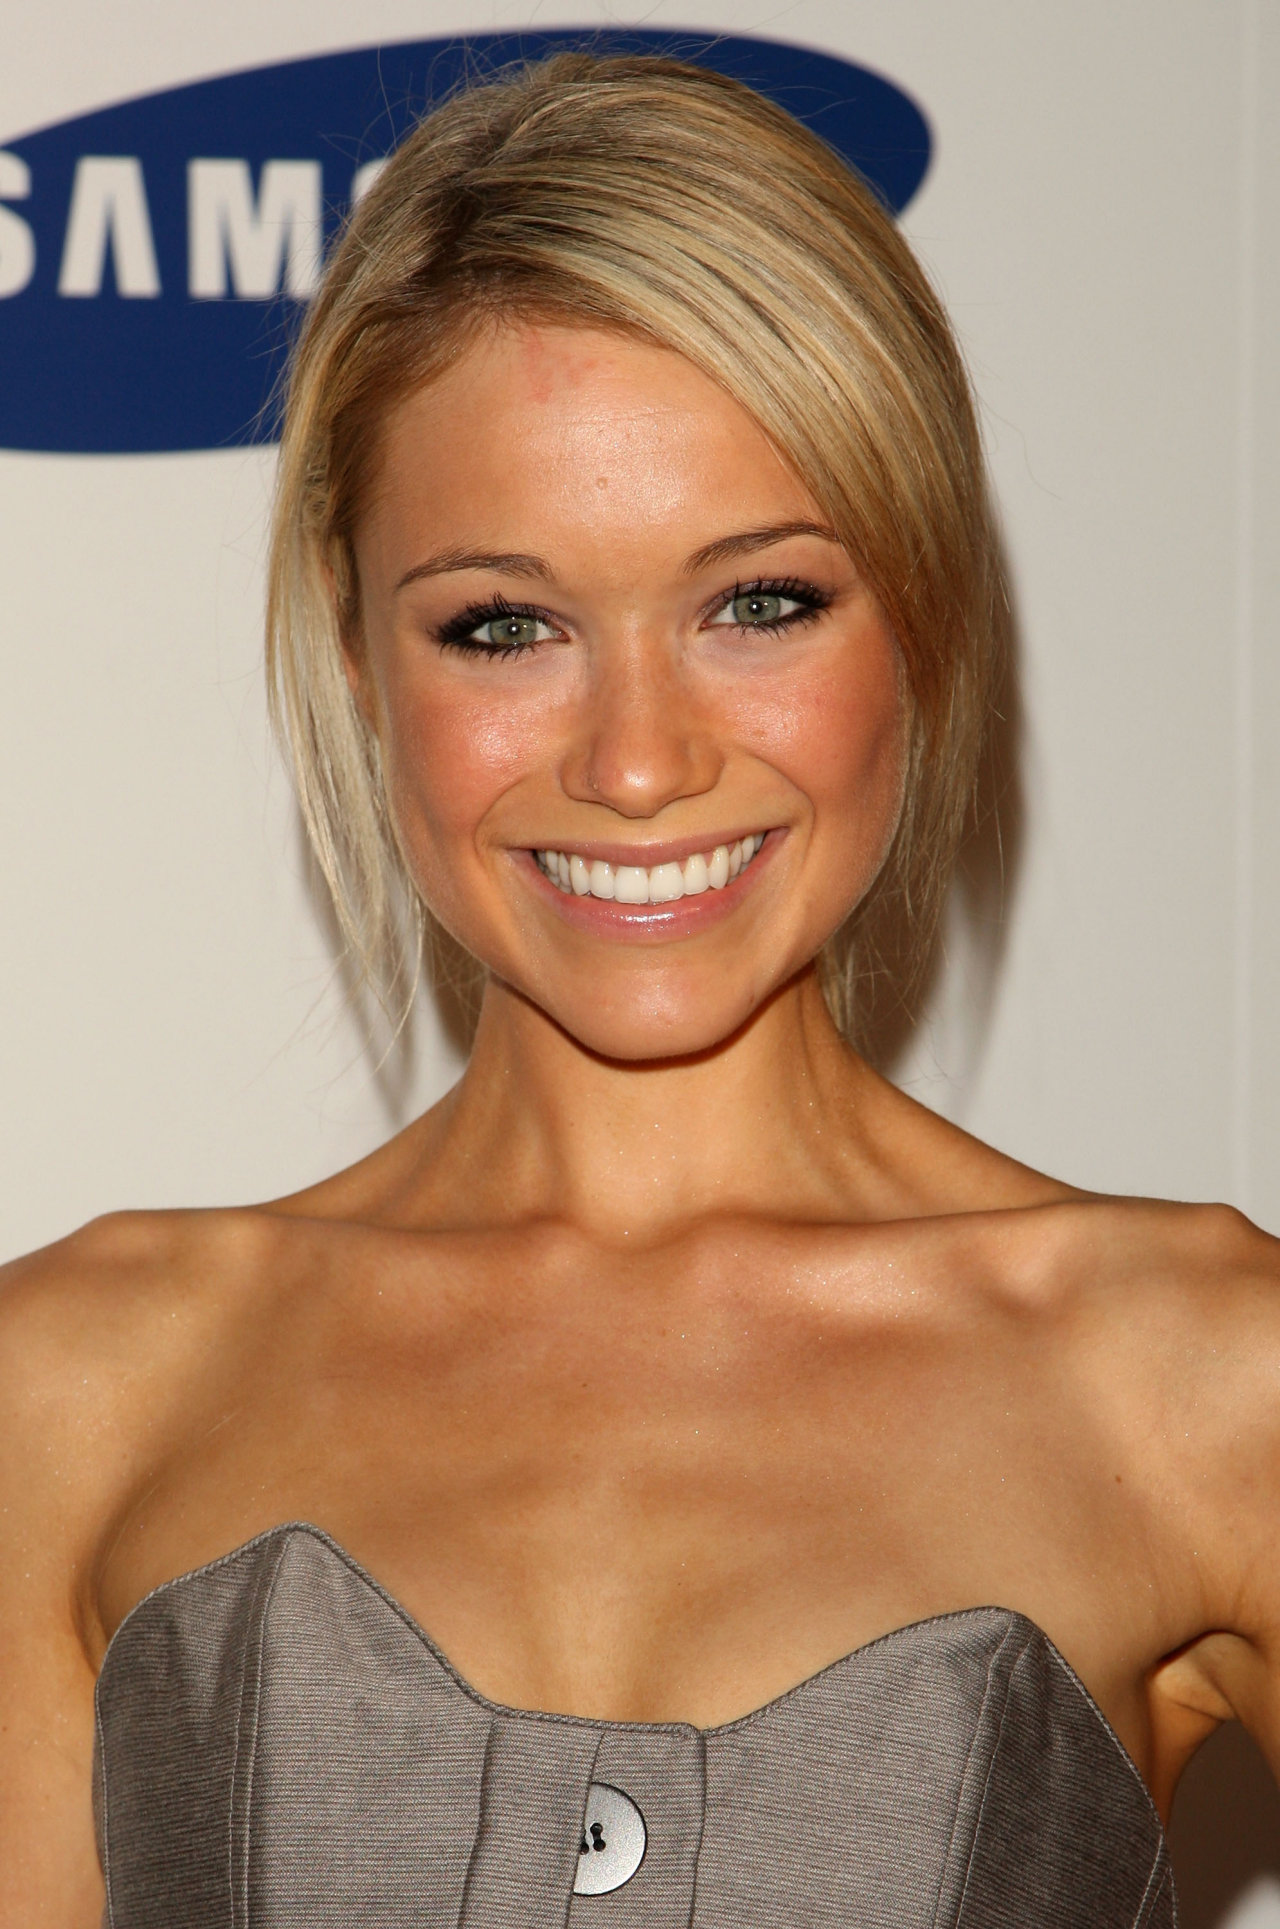 Katrina Bowden leaked wallpapers